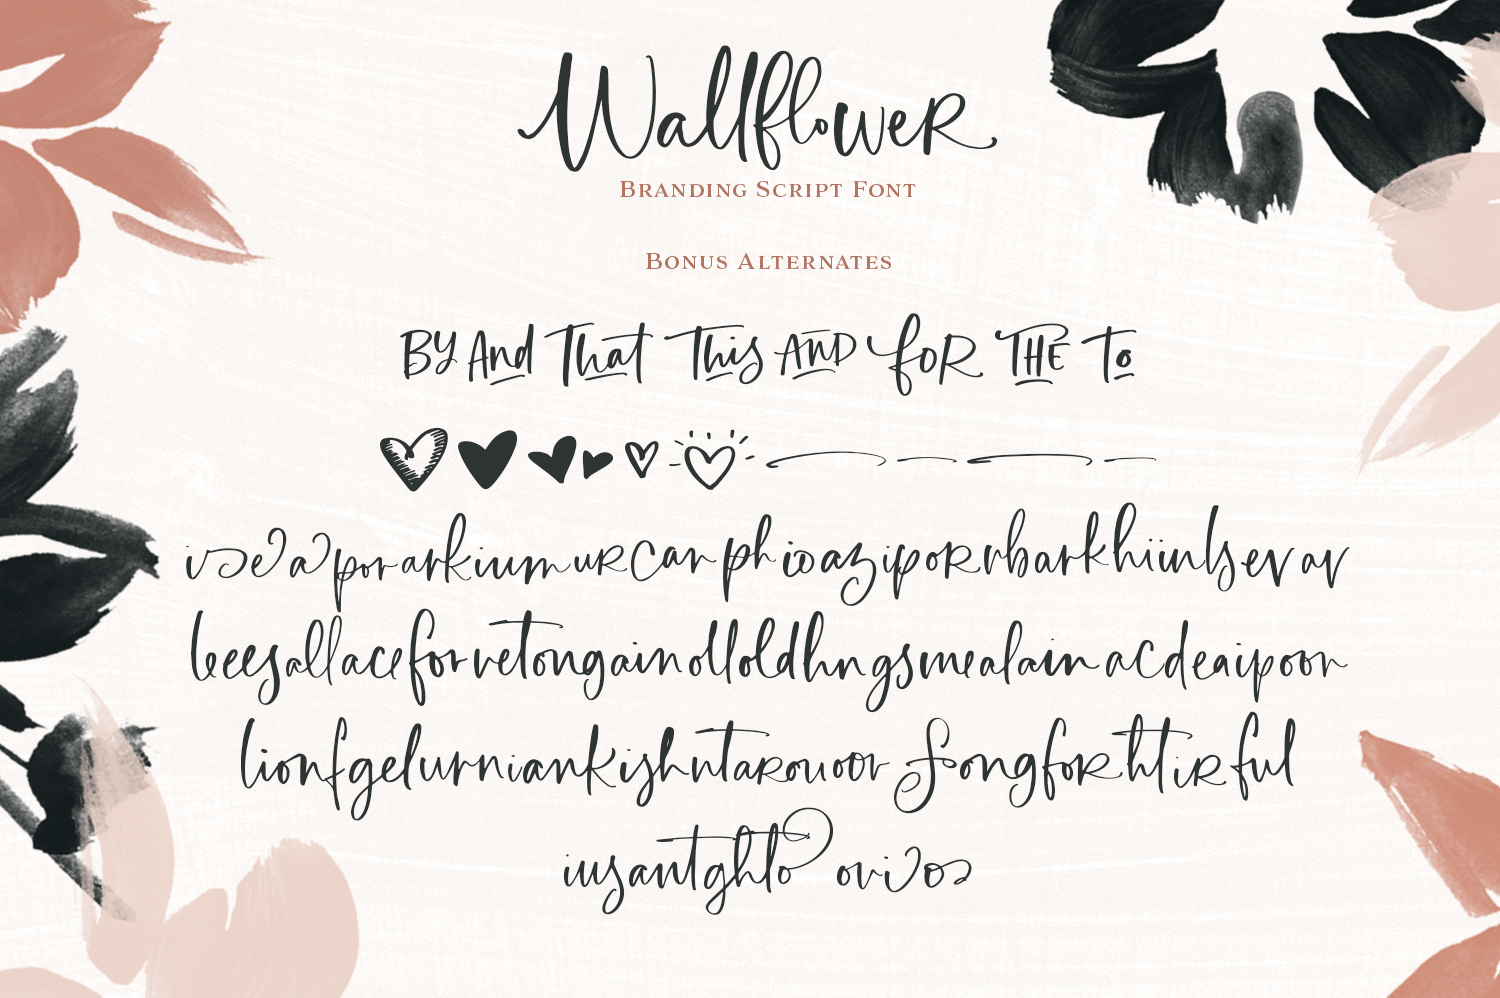 Wallflower Branding Type Collection